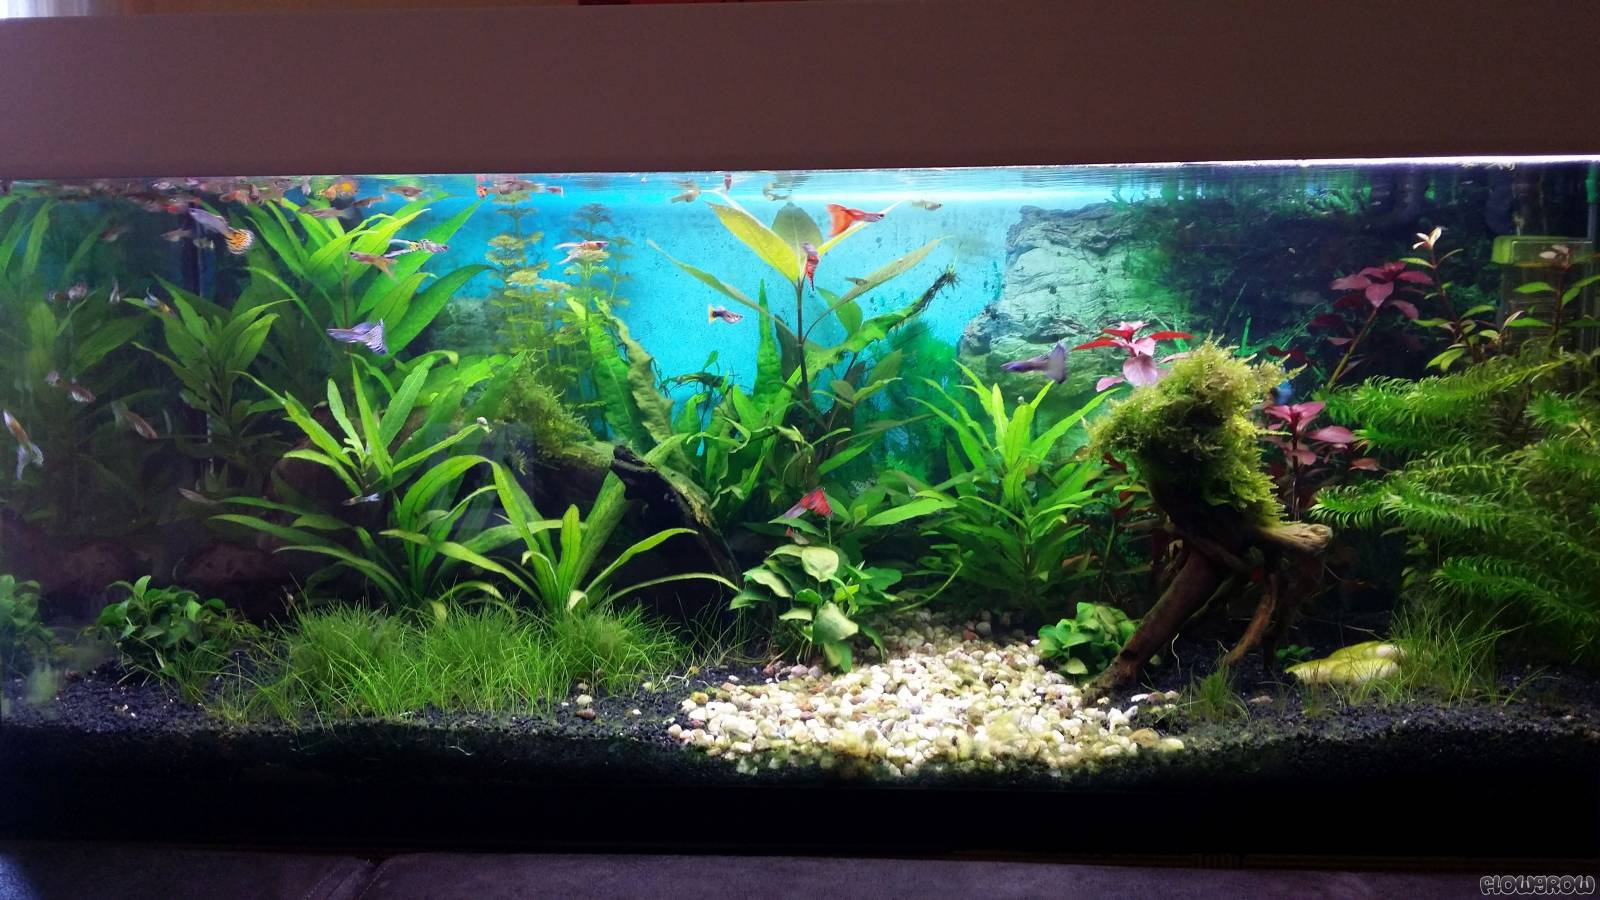 Guppybecken flowgrow aquascape aquarien datenbank for Neon aquarium